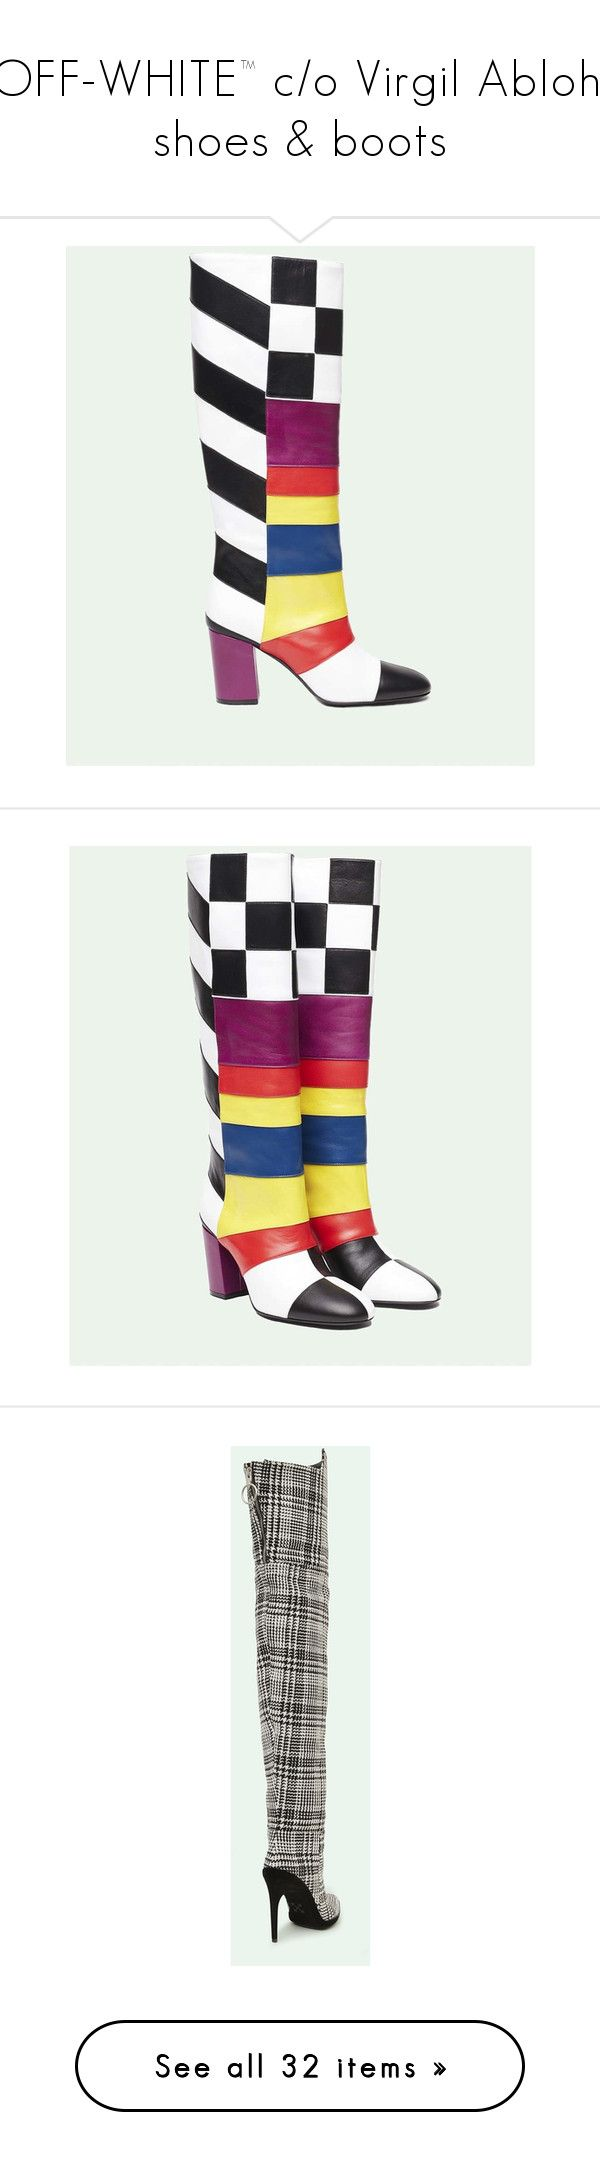 """""""OFF-WHITE™ c/o Virgil Abloh. shoes & boots"""" by cherhorowitz95 ❤ liked on Polyvore featuring shoes, multicolor shoes, off white shoes, multi color shoes, champagne shoes, multi colored shoes, vintage white shoes, colorful shoes, plaid shoes and tartan shoes"""